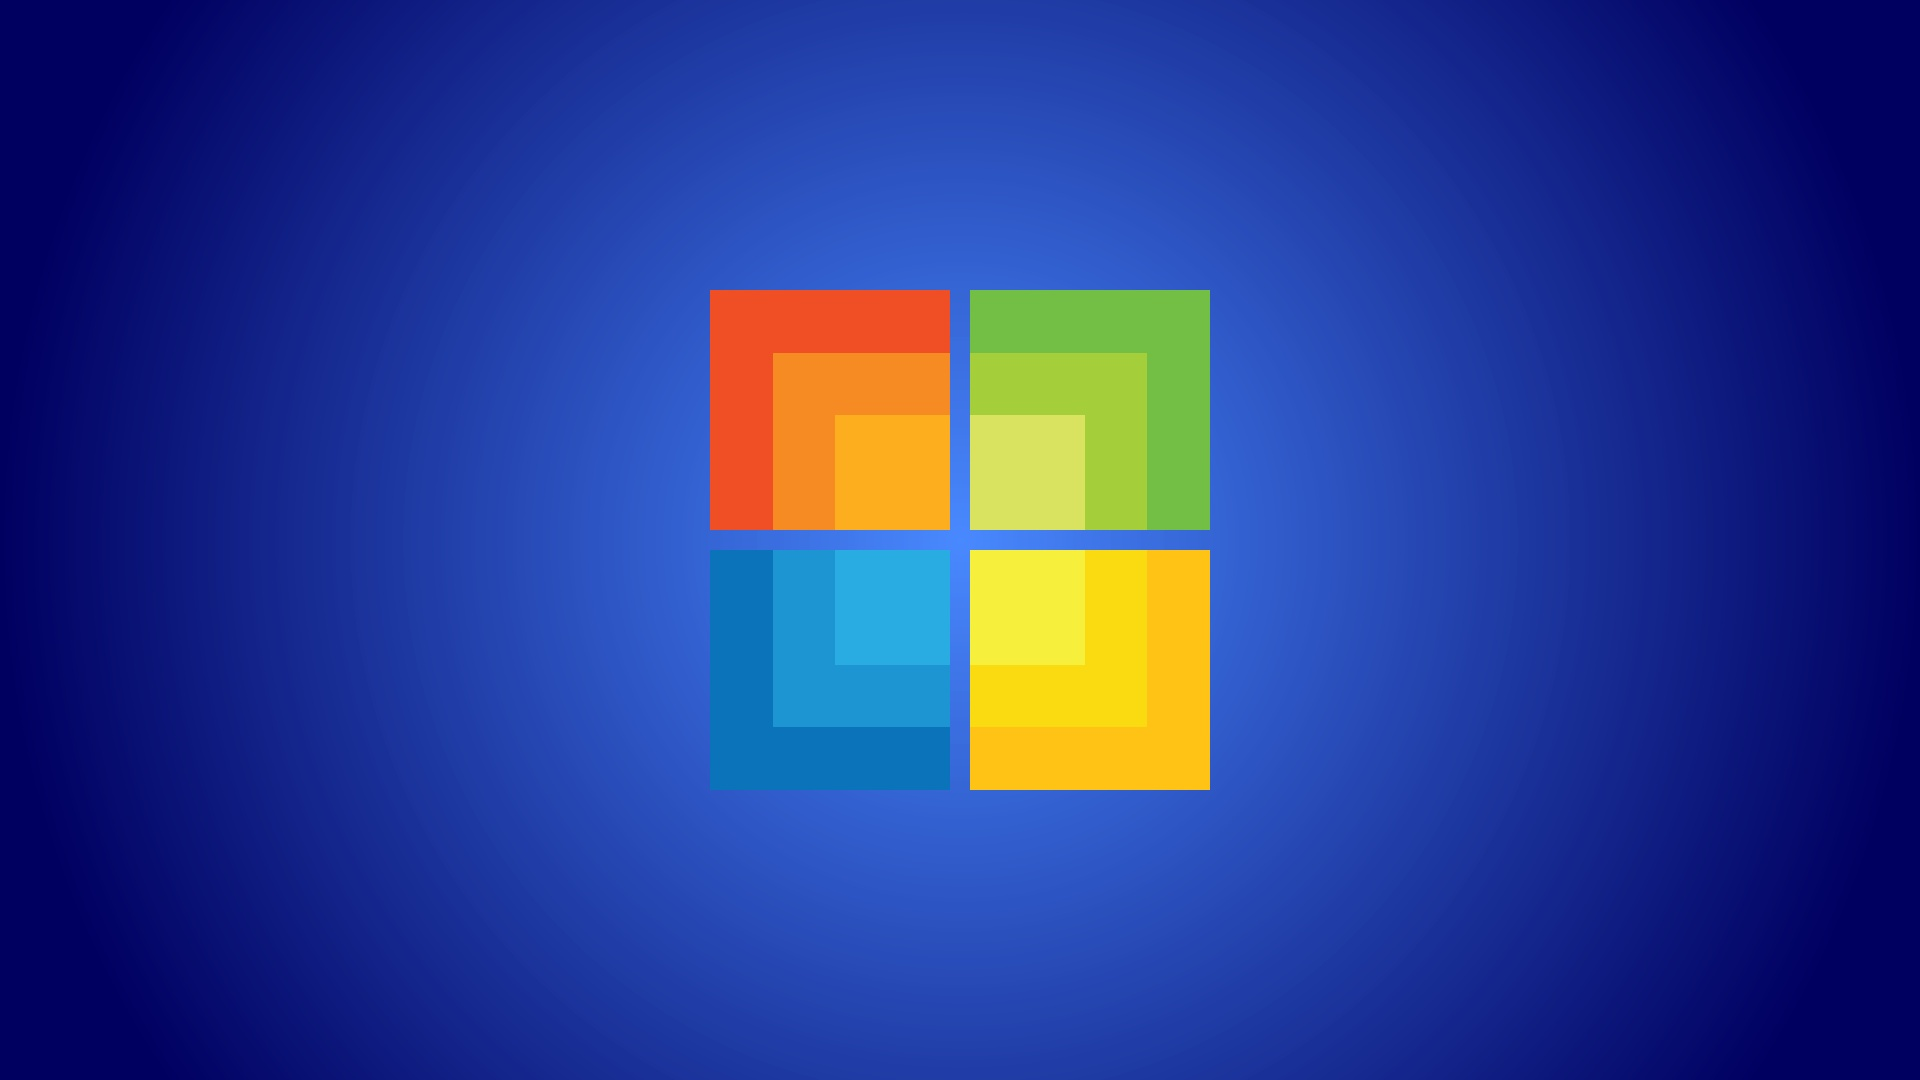 Microsoft shows that Windows 10 will soon catch up with Windows 7